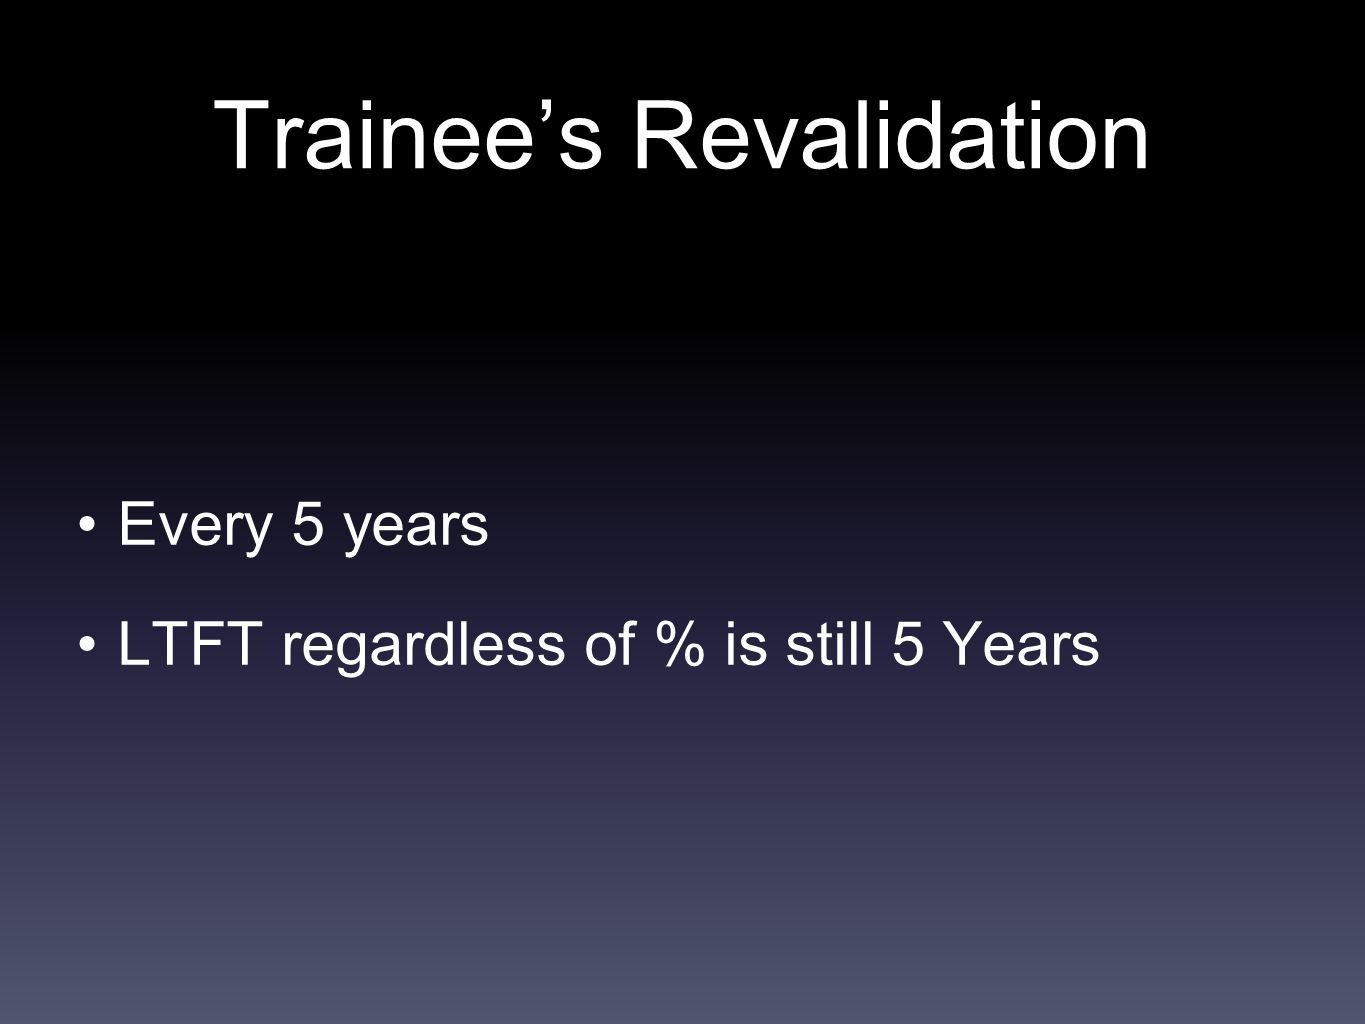 Trainee's Revalidation Every 5 years LTFT regardless of % is still 5 Years